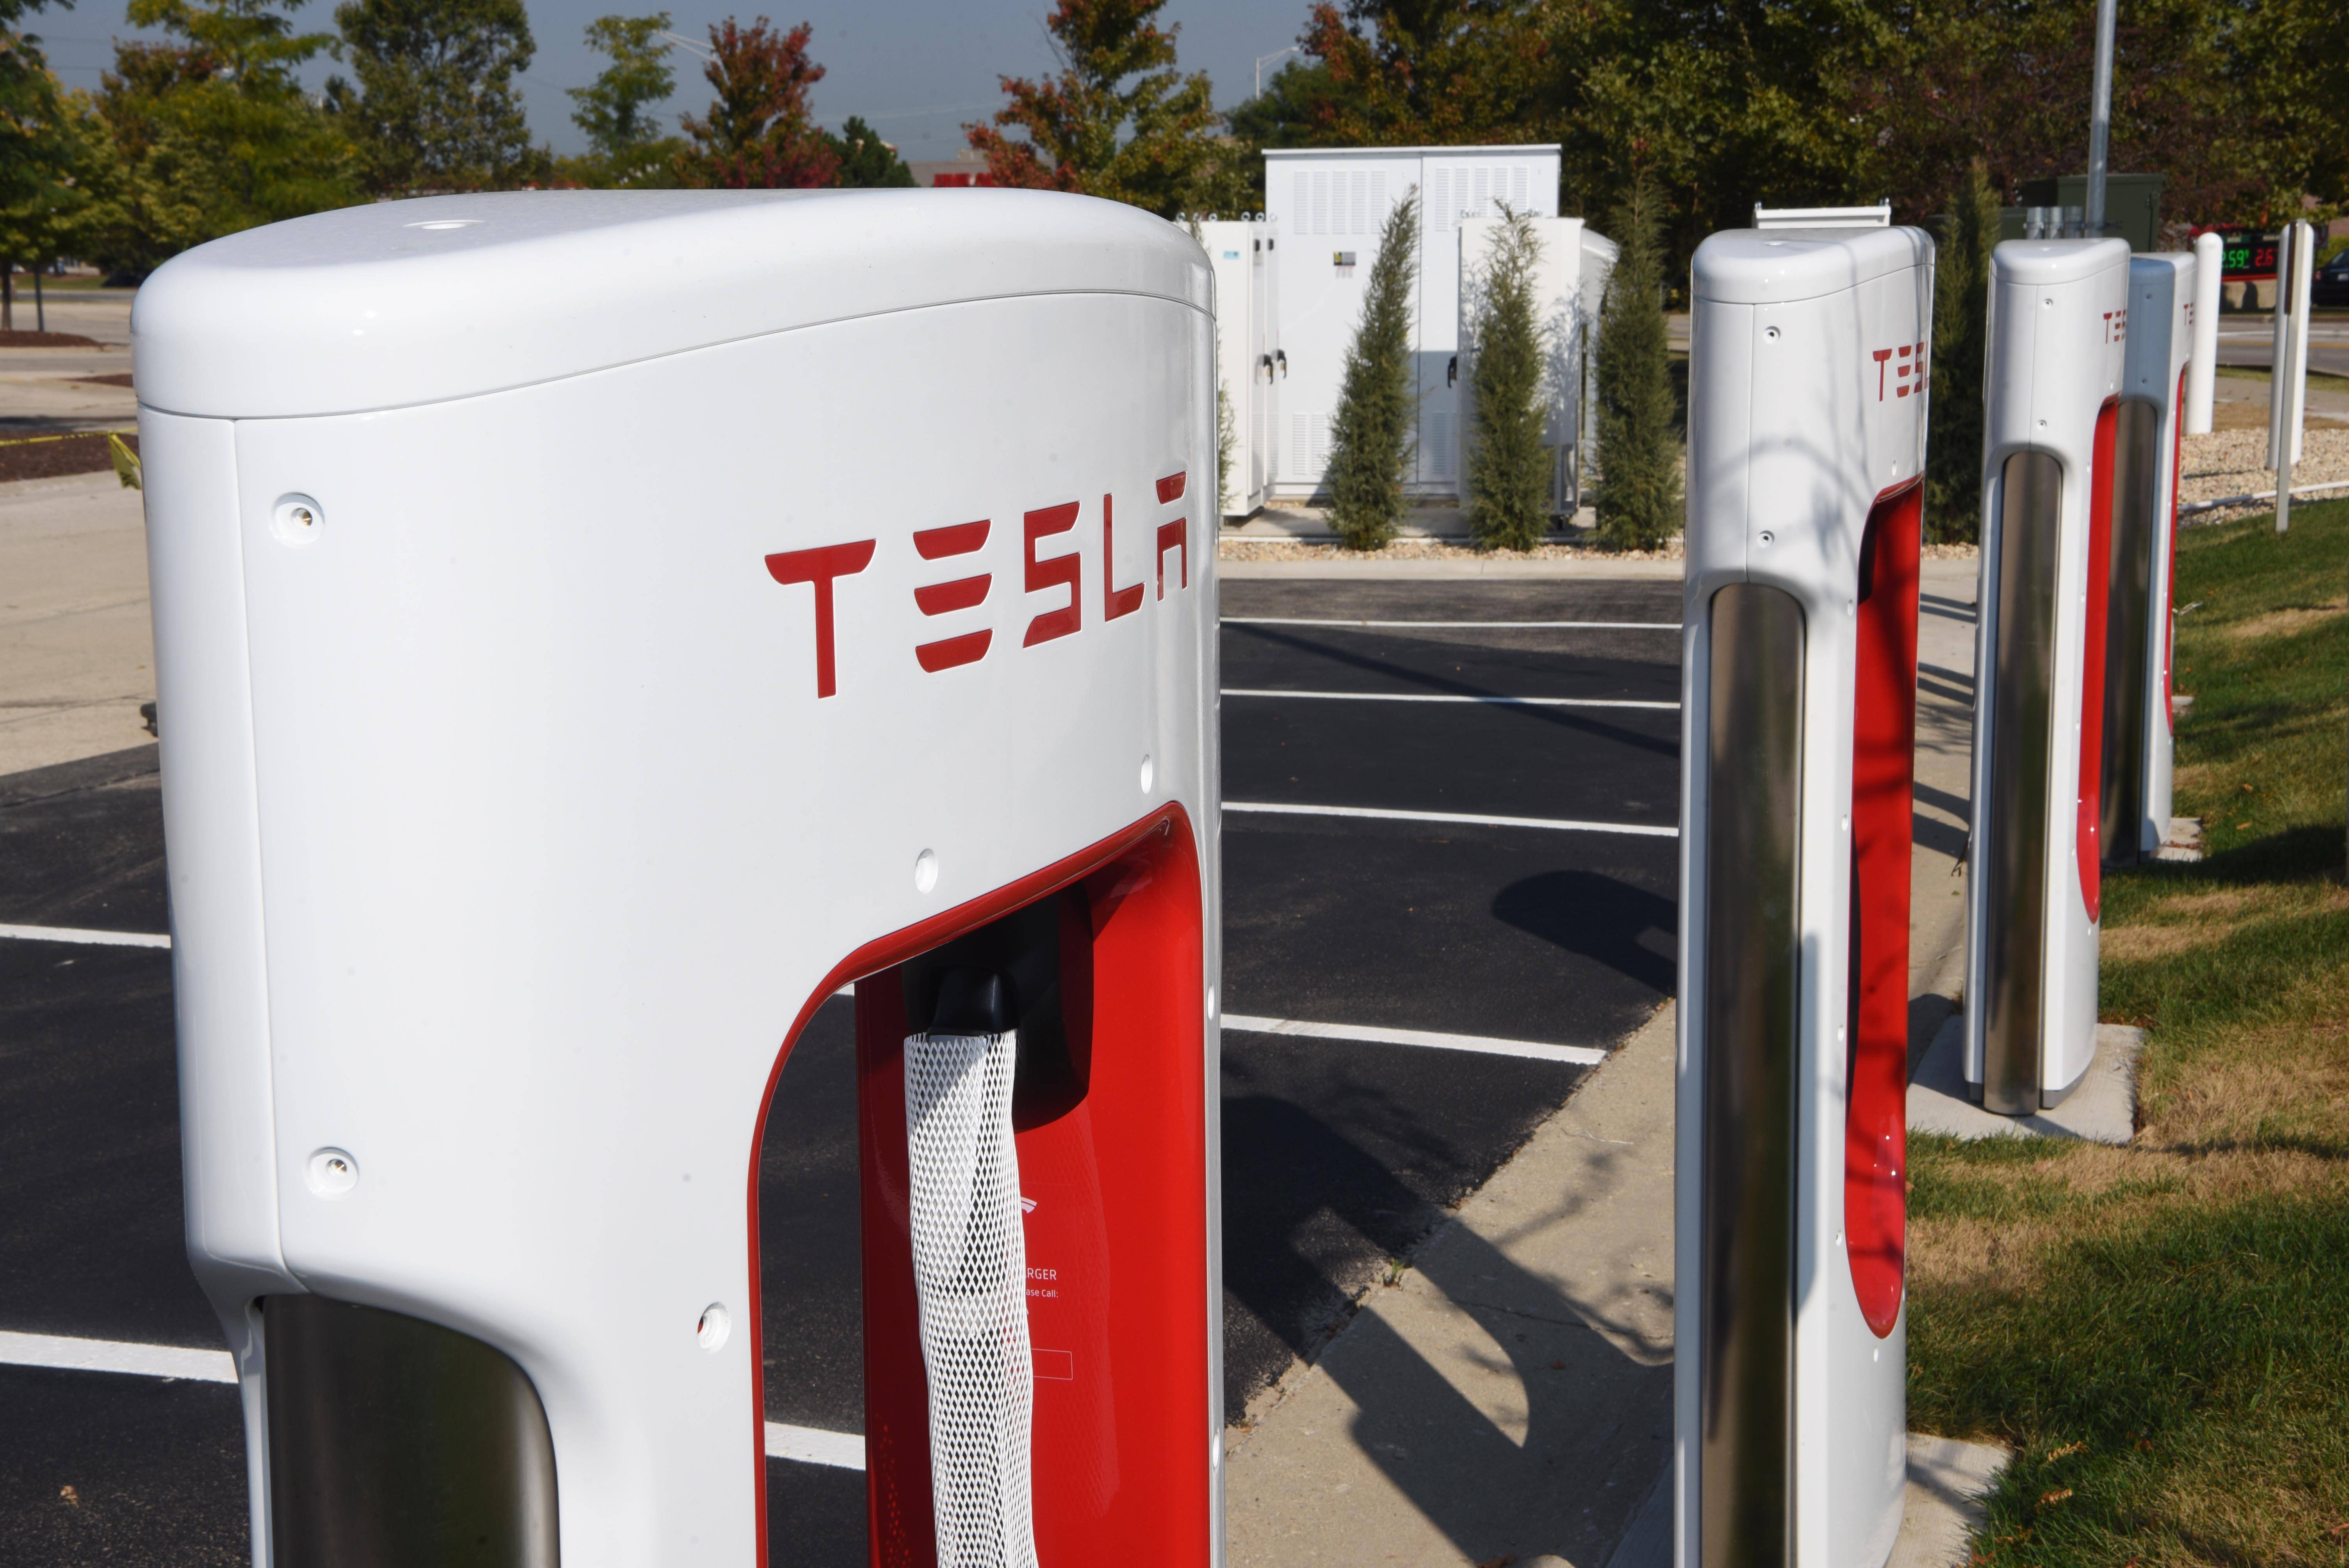 A new Tesla Supercharger station will open soon in the parking lot of the Meijer store in Rolling Meadows.